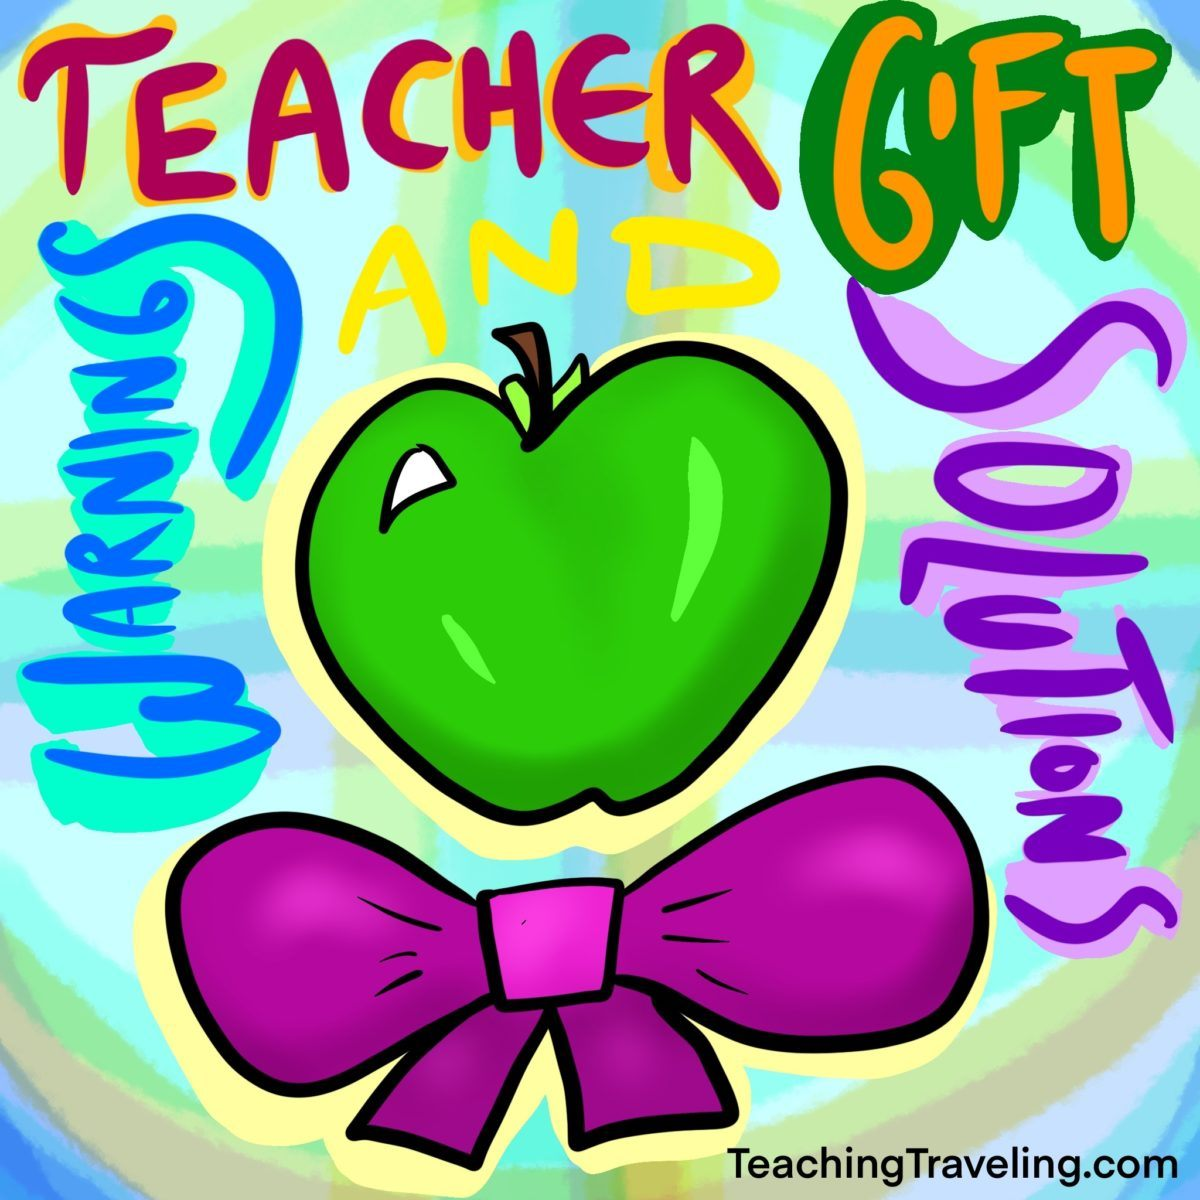 Teacher gift ideas for holidays and appreciation